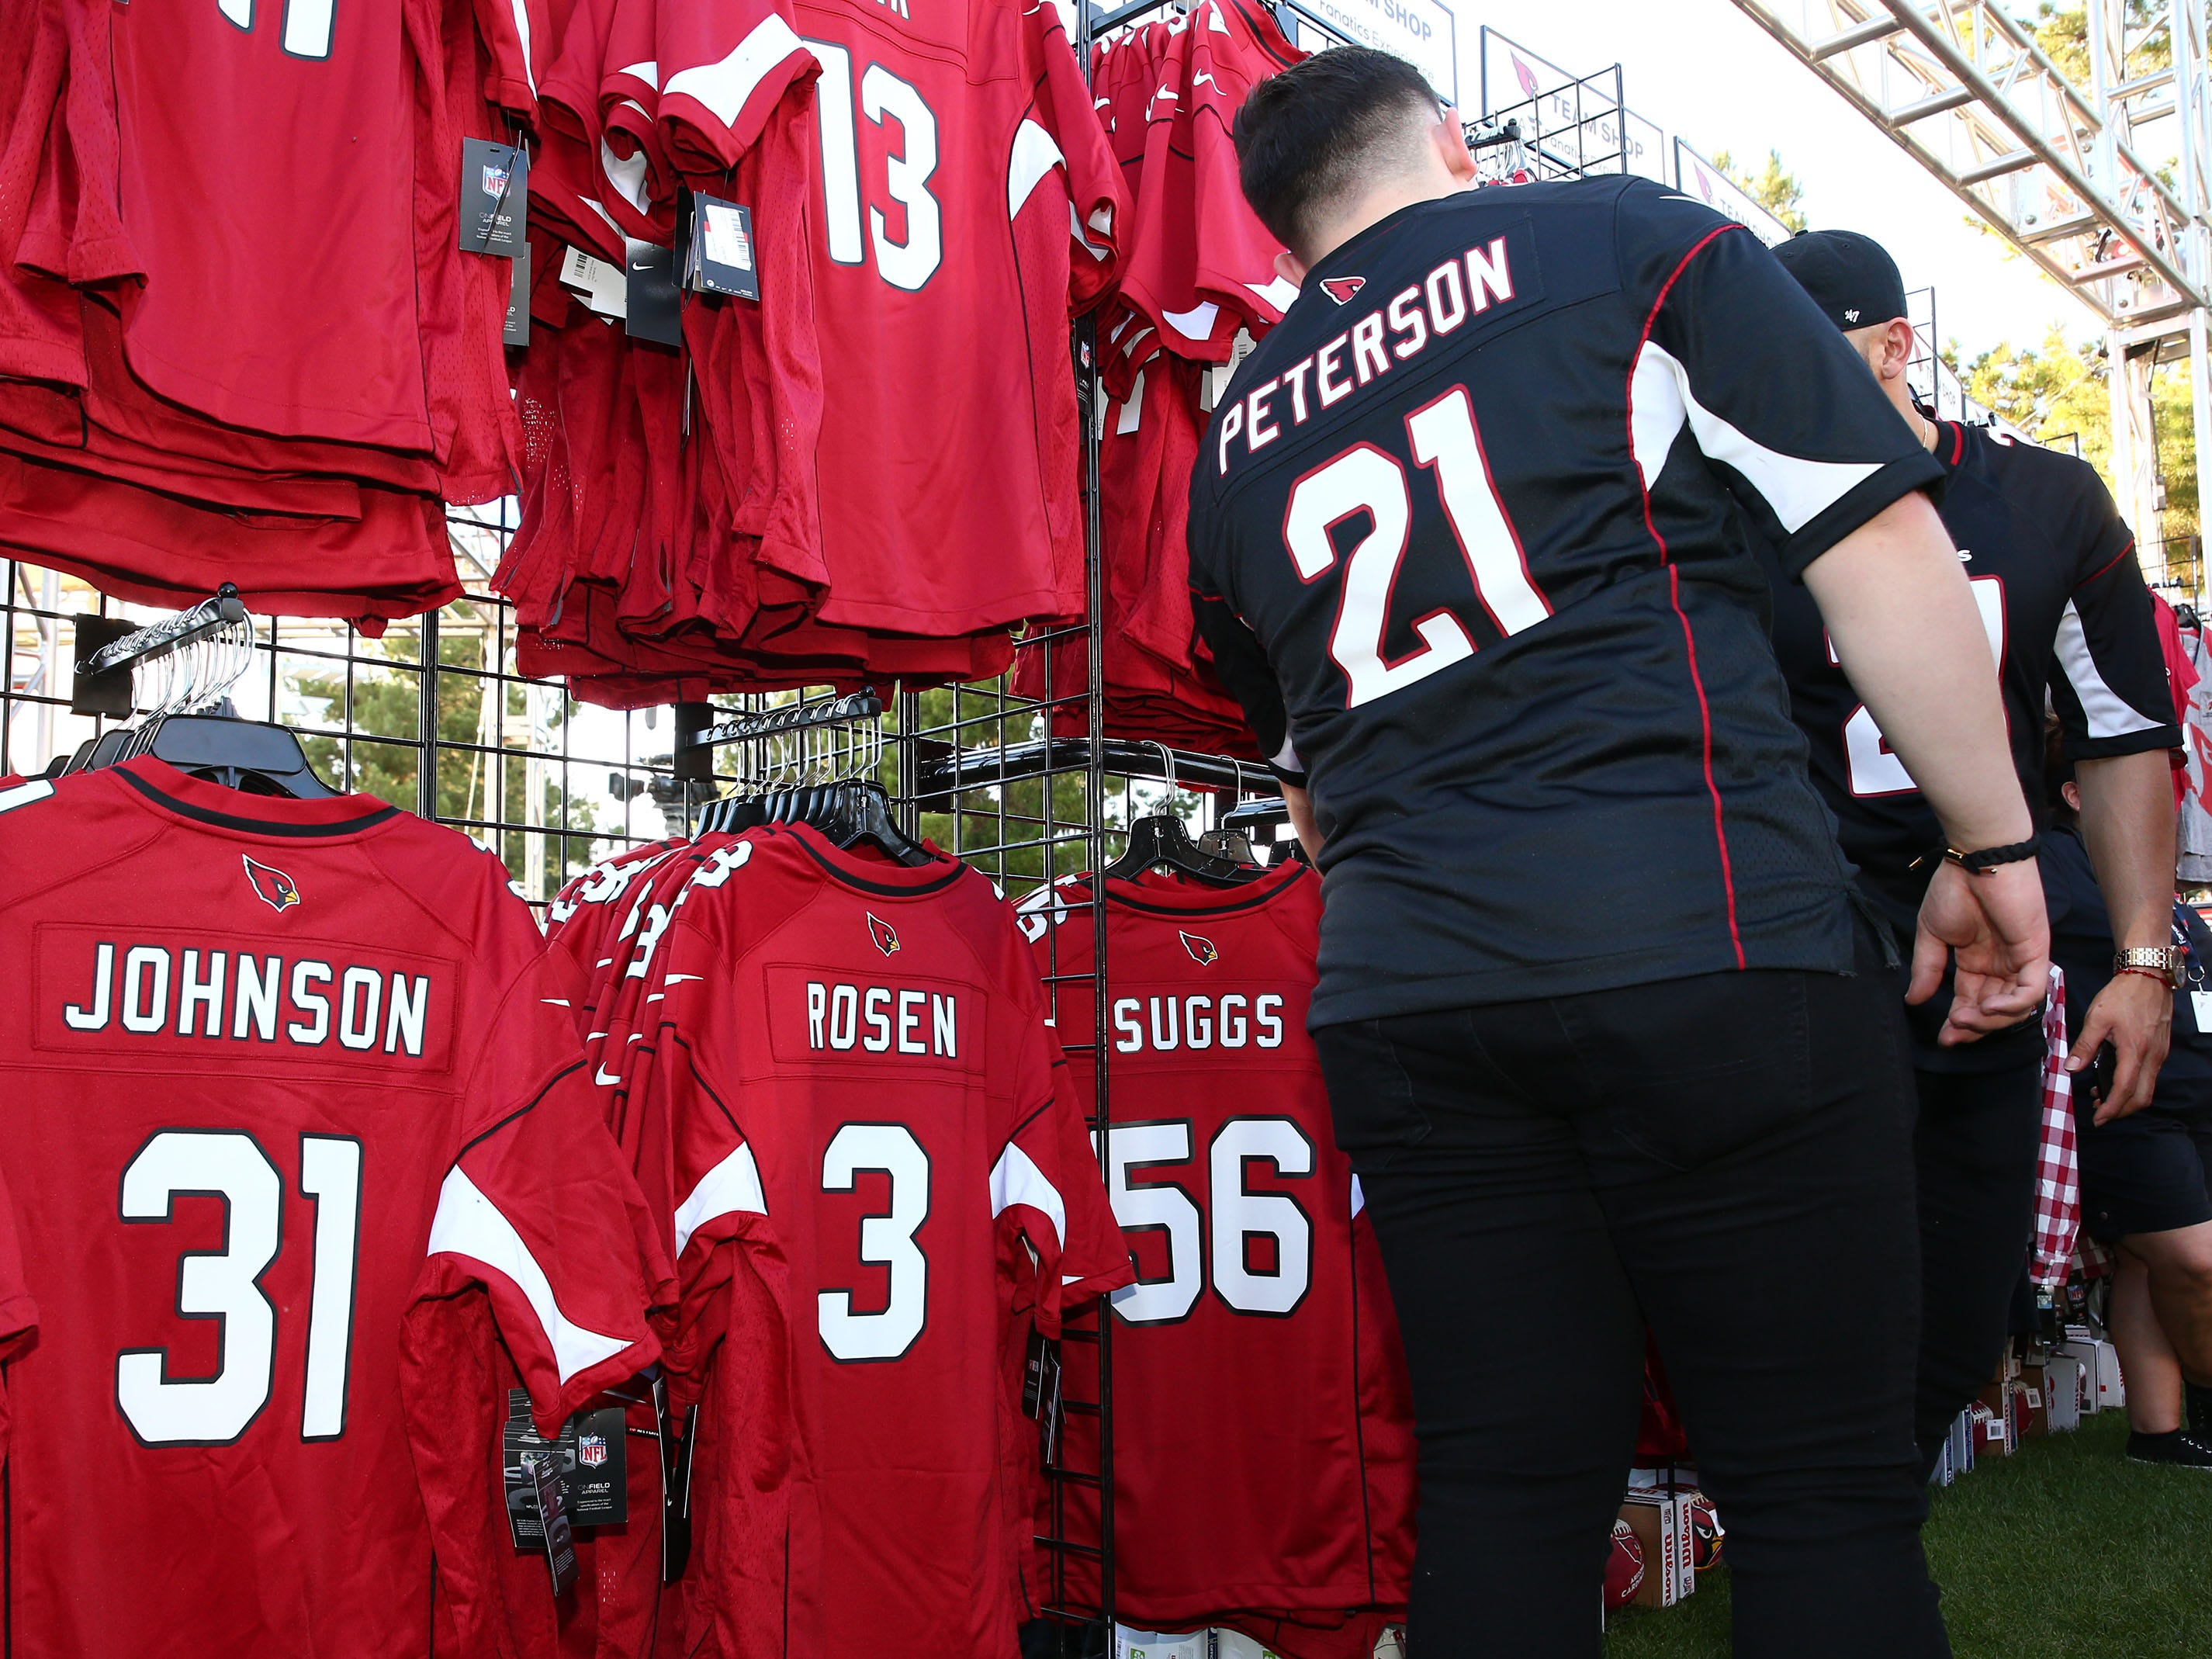 Arizona Cardinals quarterback Josh Rosen jerseys for sell during the NFL Draft watch party at State Farm Stadium on Apr. 25, 2019 in Glendale, Ariz.